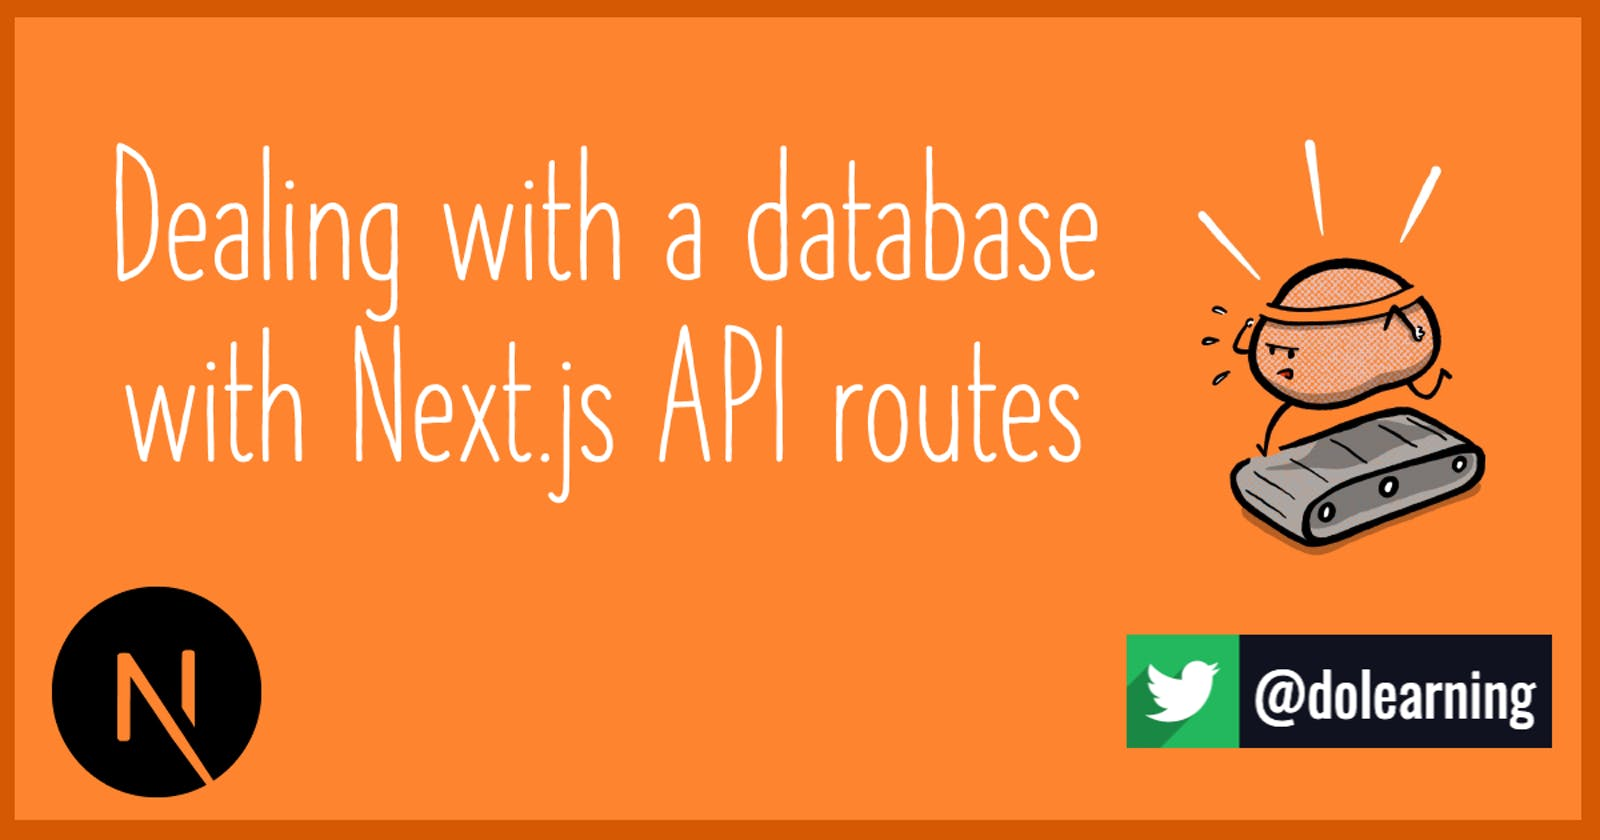 Dealing with a database with Next.js API routes